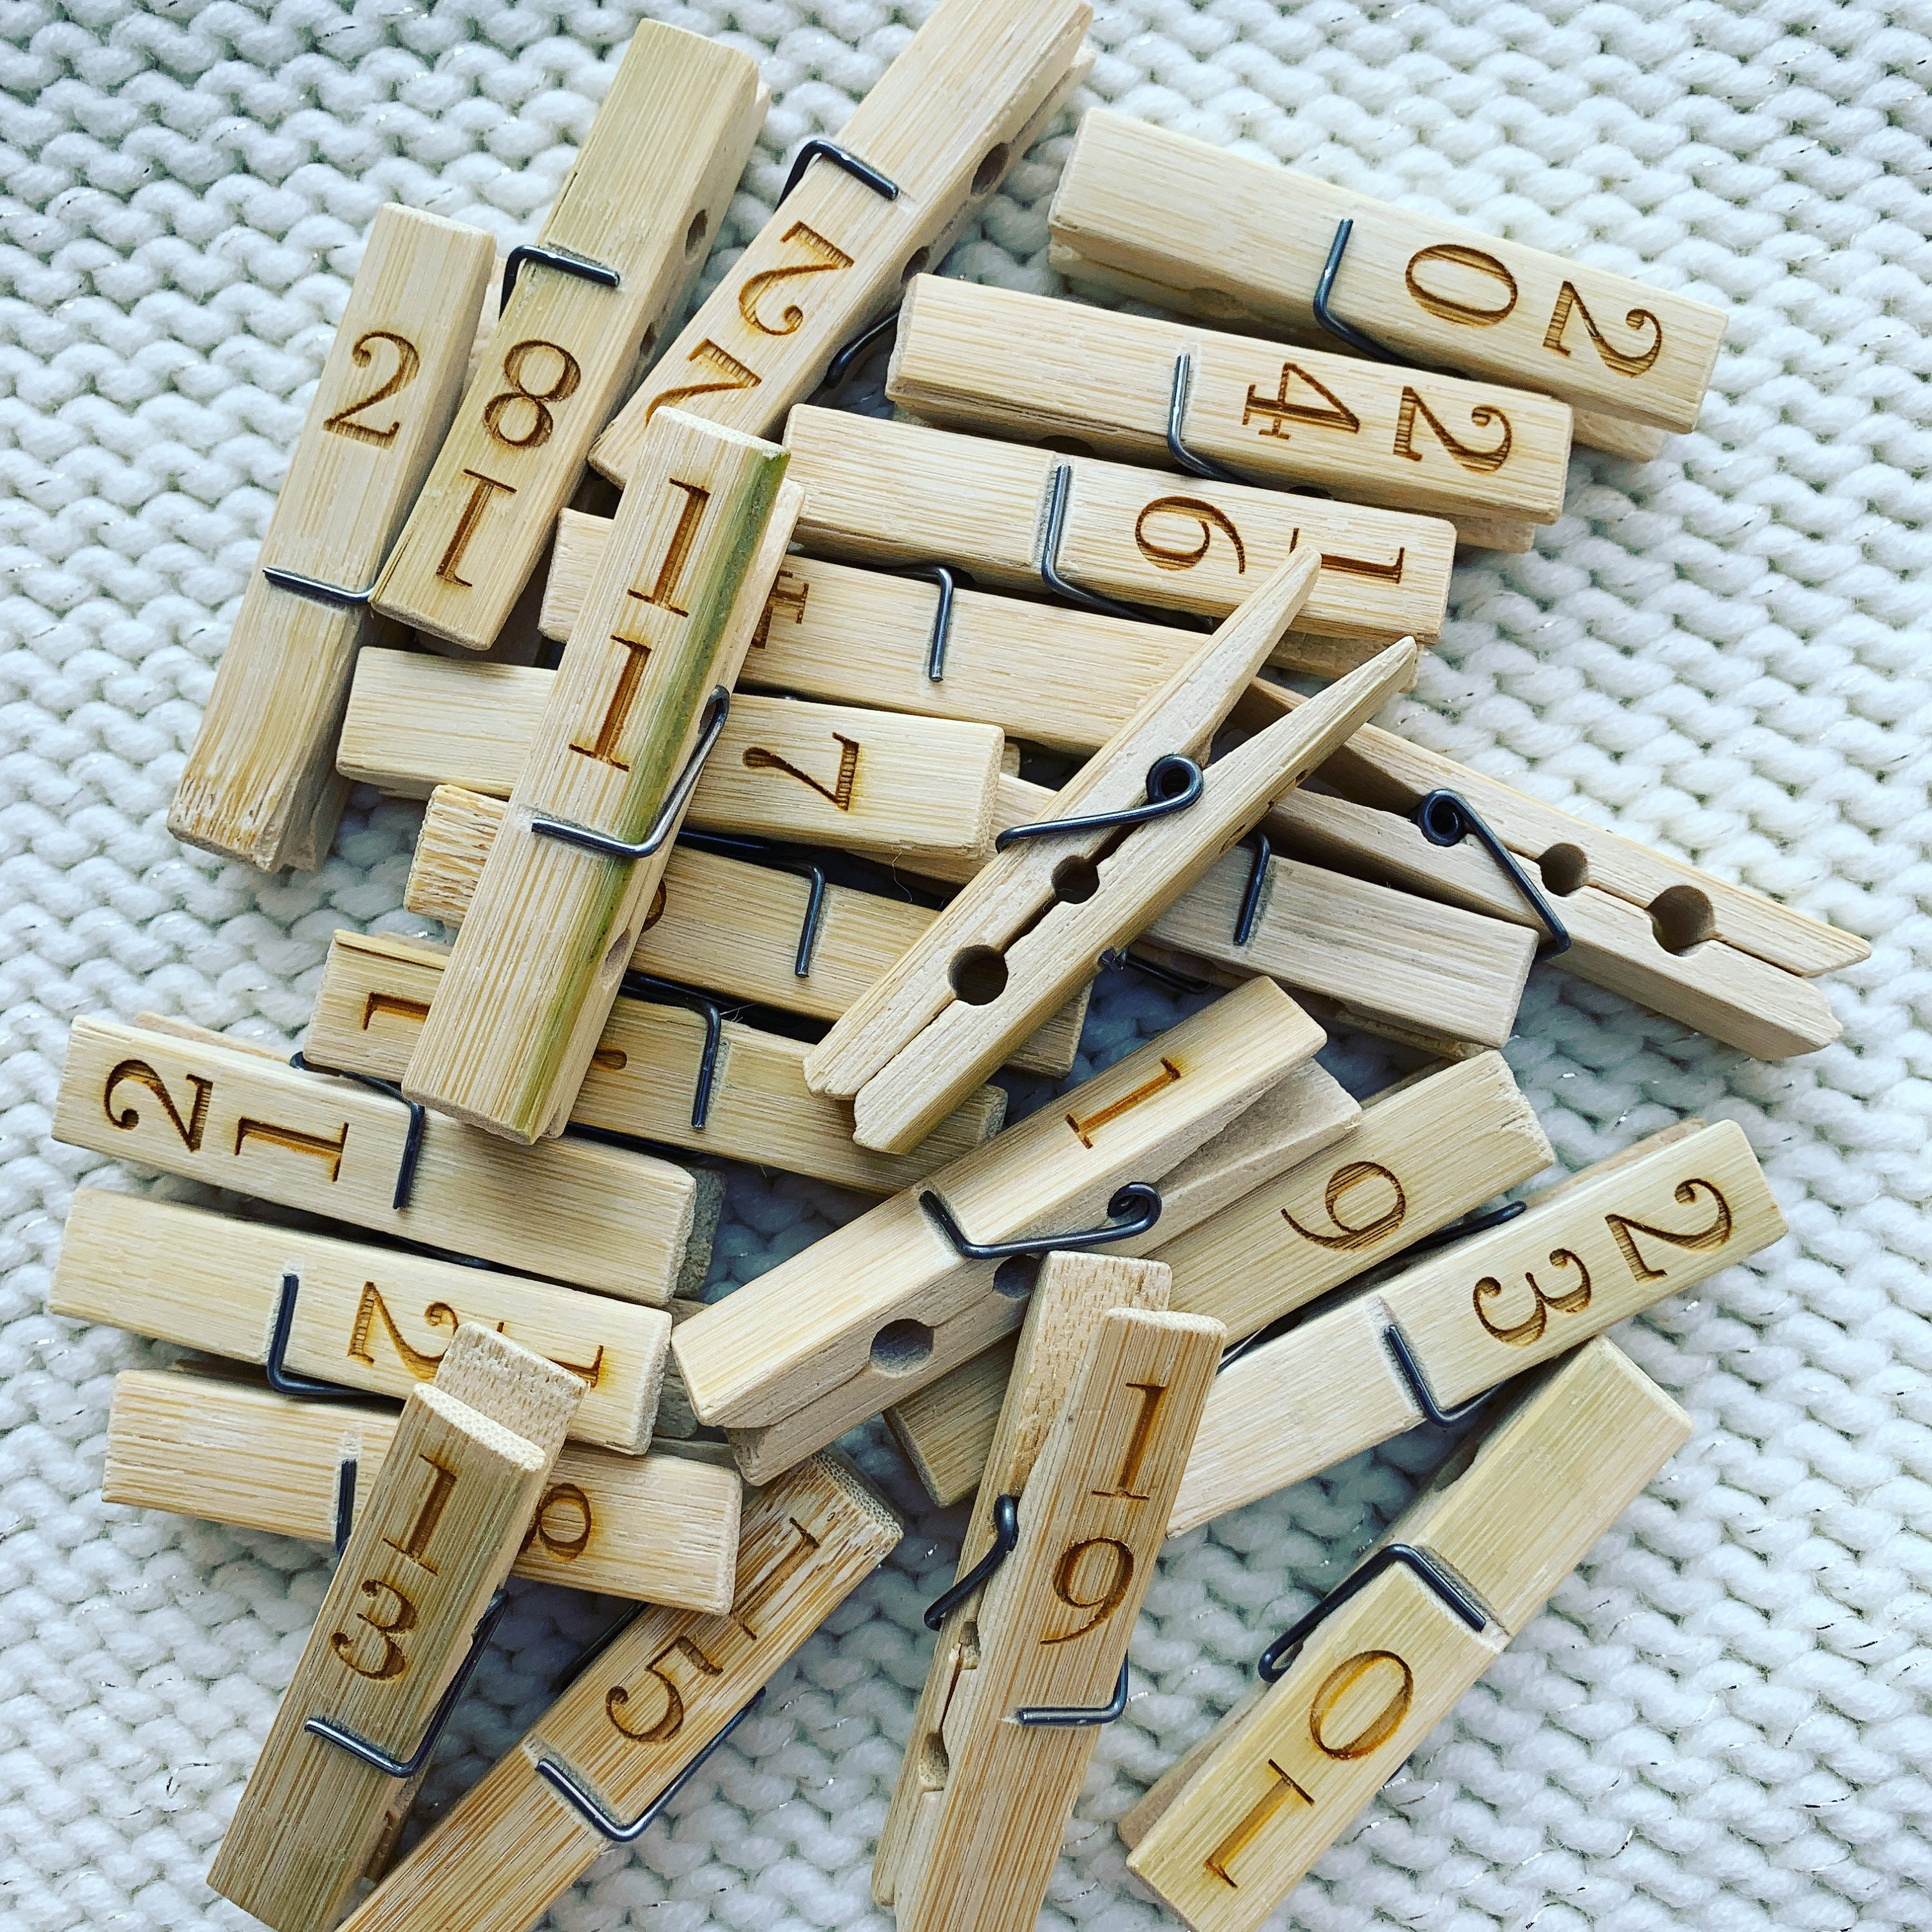 24 Natural Wooden Clothes Pegs Perfect for AdventWooden Shapes for Crafts